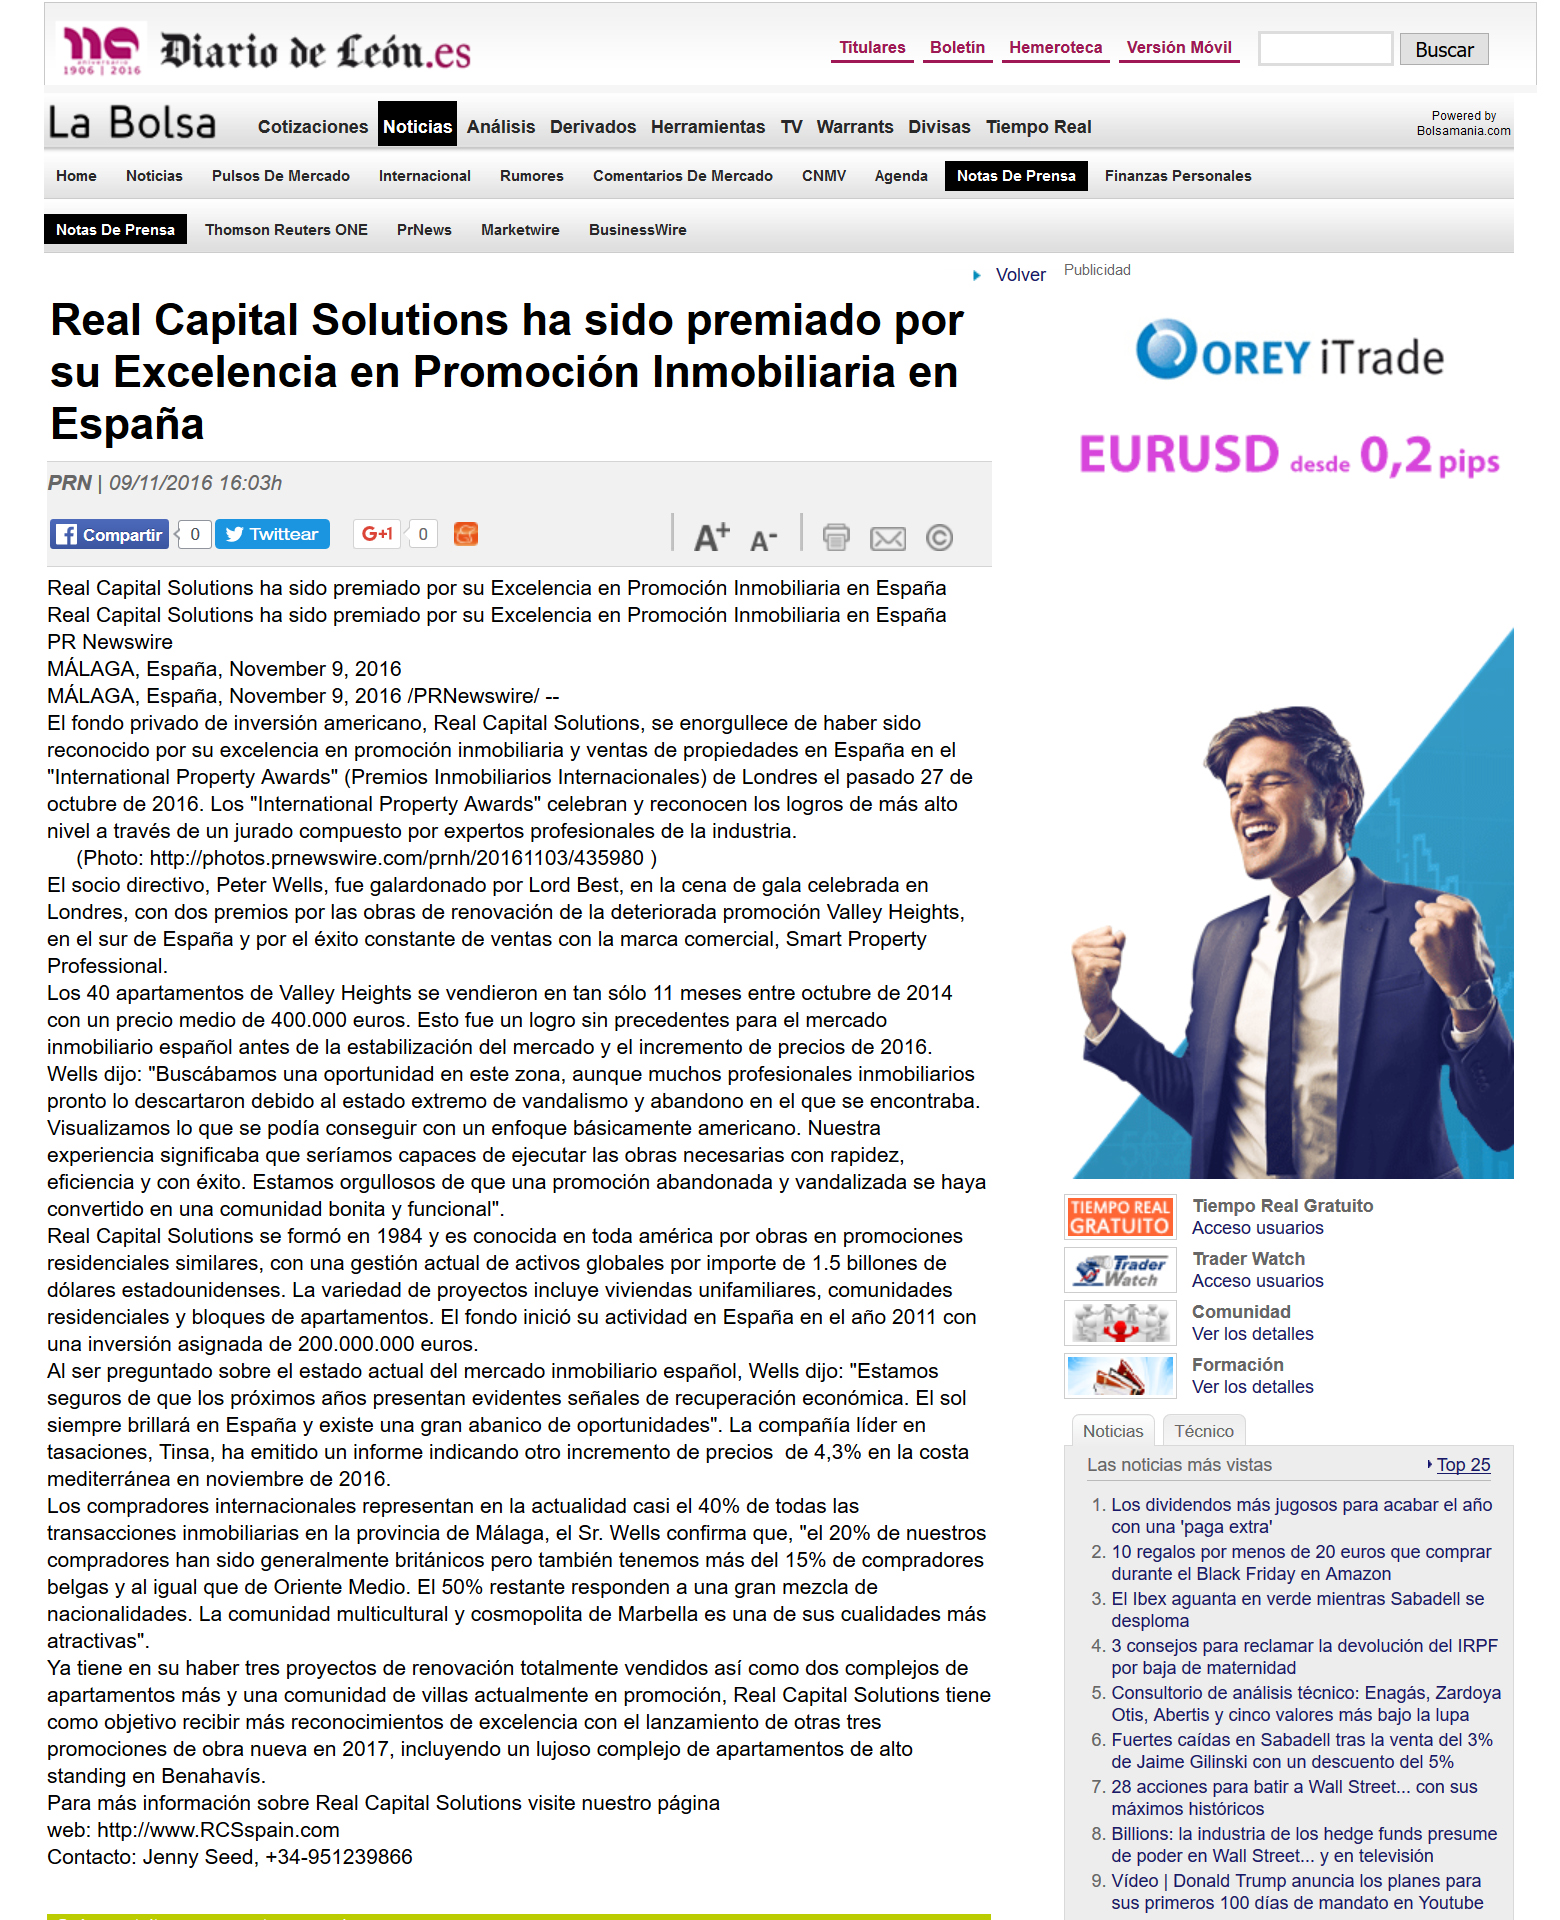 Real Capital Solutions ha sido premiado